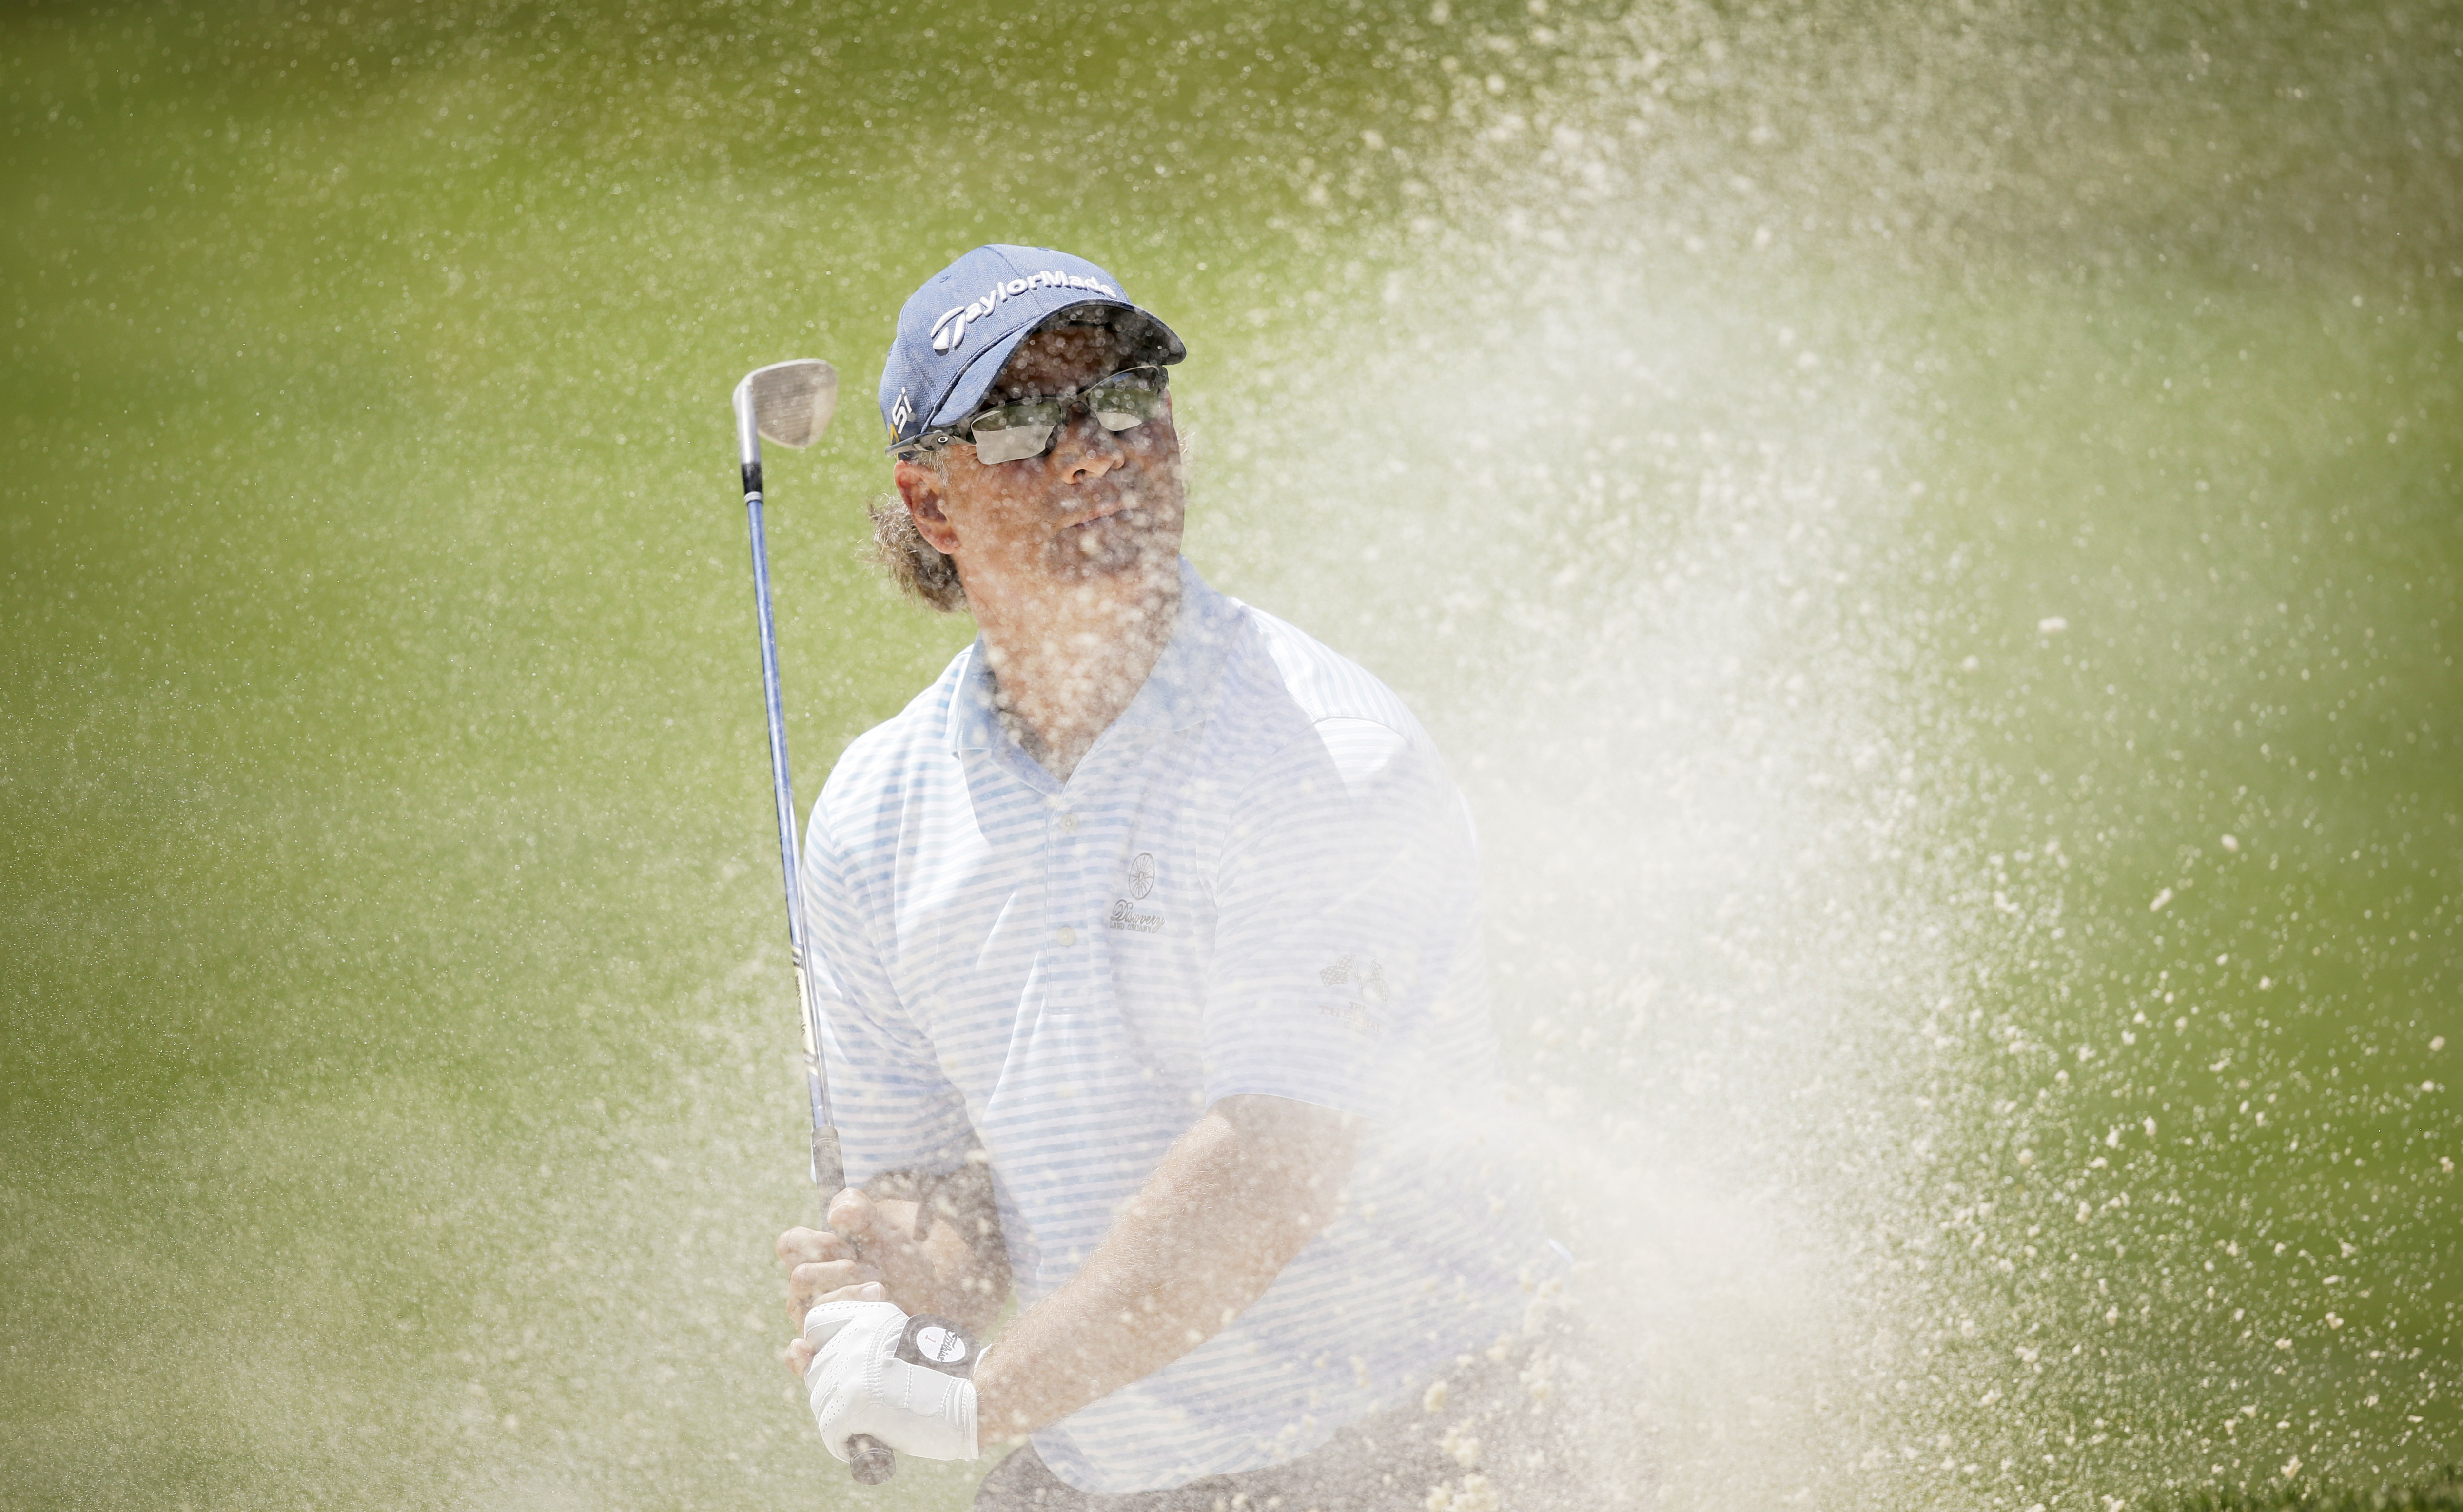 Scott McCarron hits out of a bunker onto the ninth green during the final round of the PGA Tour Champions Principal Charity Classic golf tournament, Sunday, June 5, 2016, in Des Moines, Iowa. (AP Photo/Charlie Neibergall)